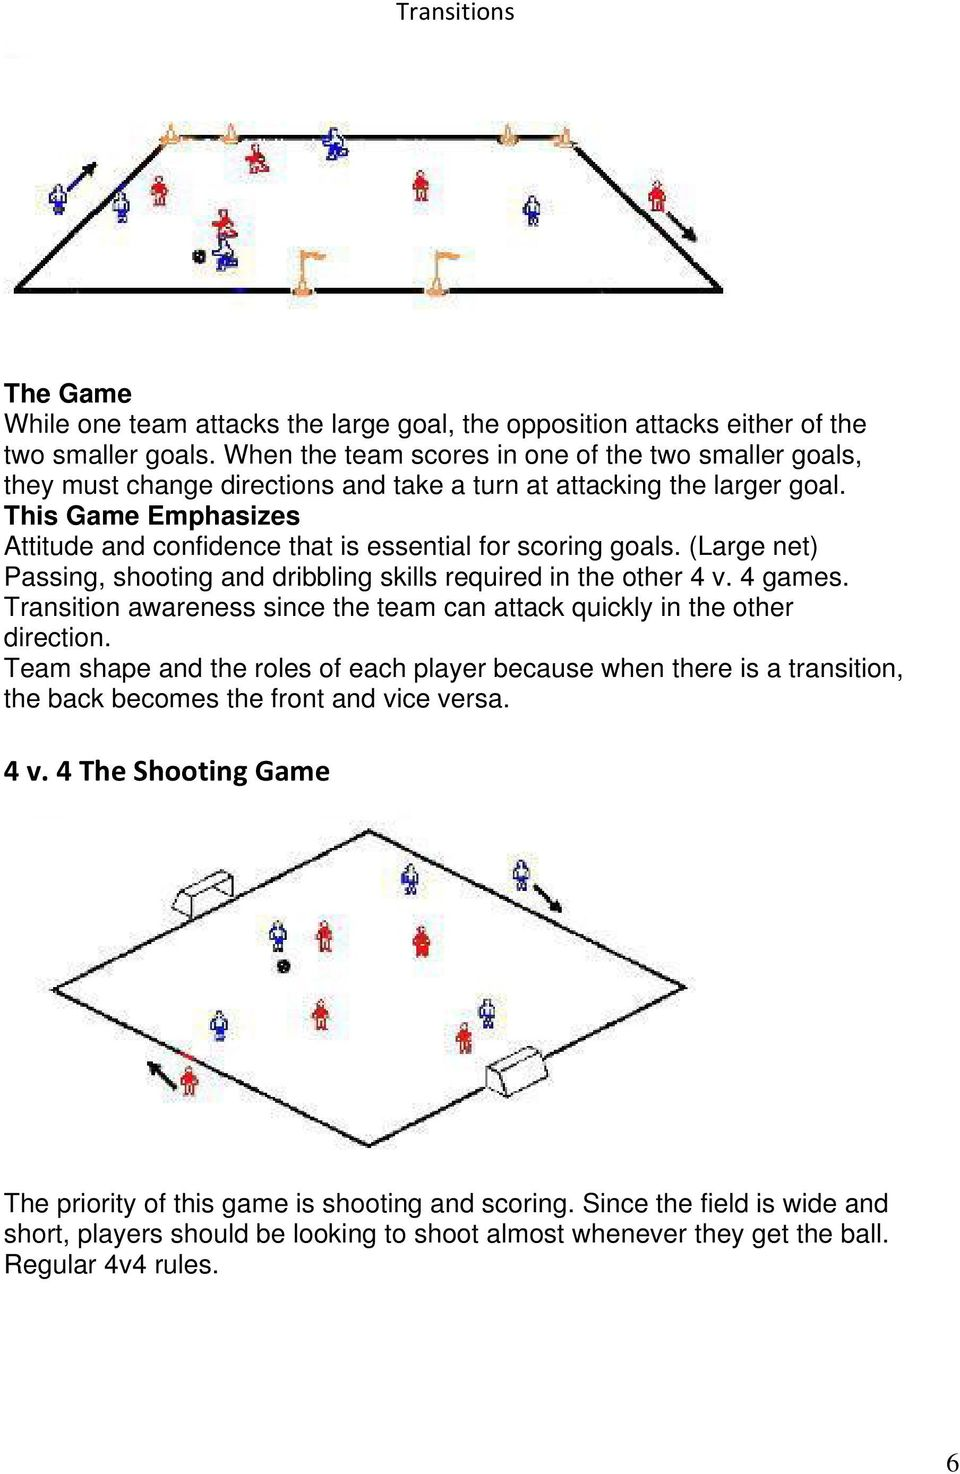 This Game Emphasizes Attitude and confidence that is essential for scoring goals. (Large net) Passing, shooting and dribbling skills required in the other 4 v. 4 games.